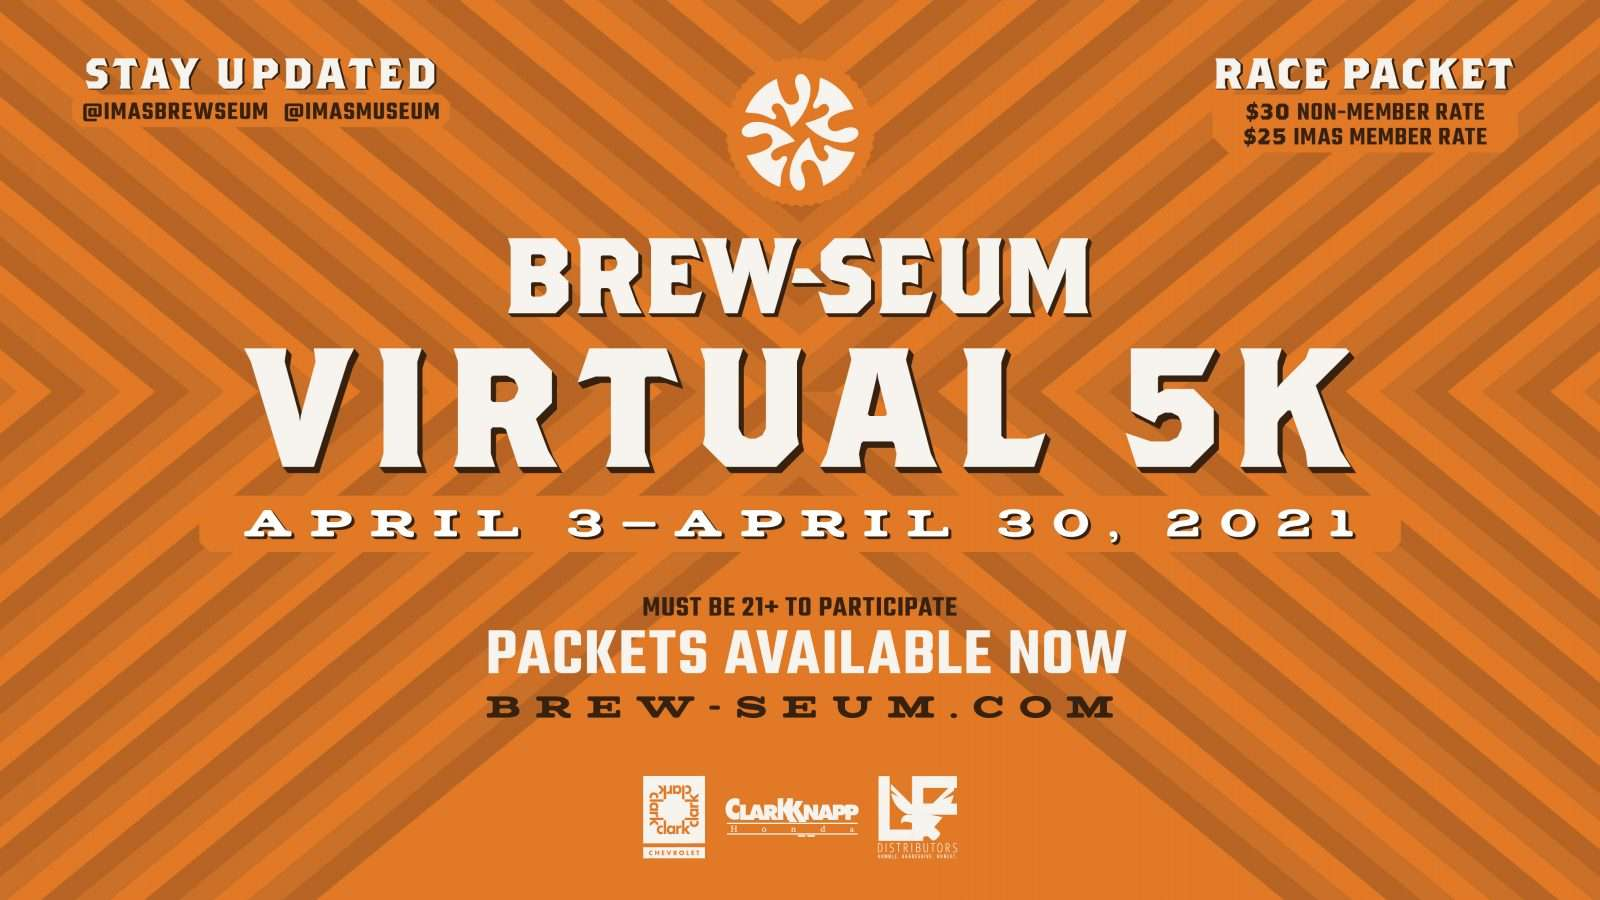 Brew seum Virtual 5k Socials v2 FB cover